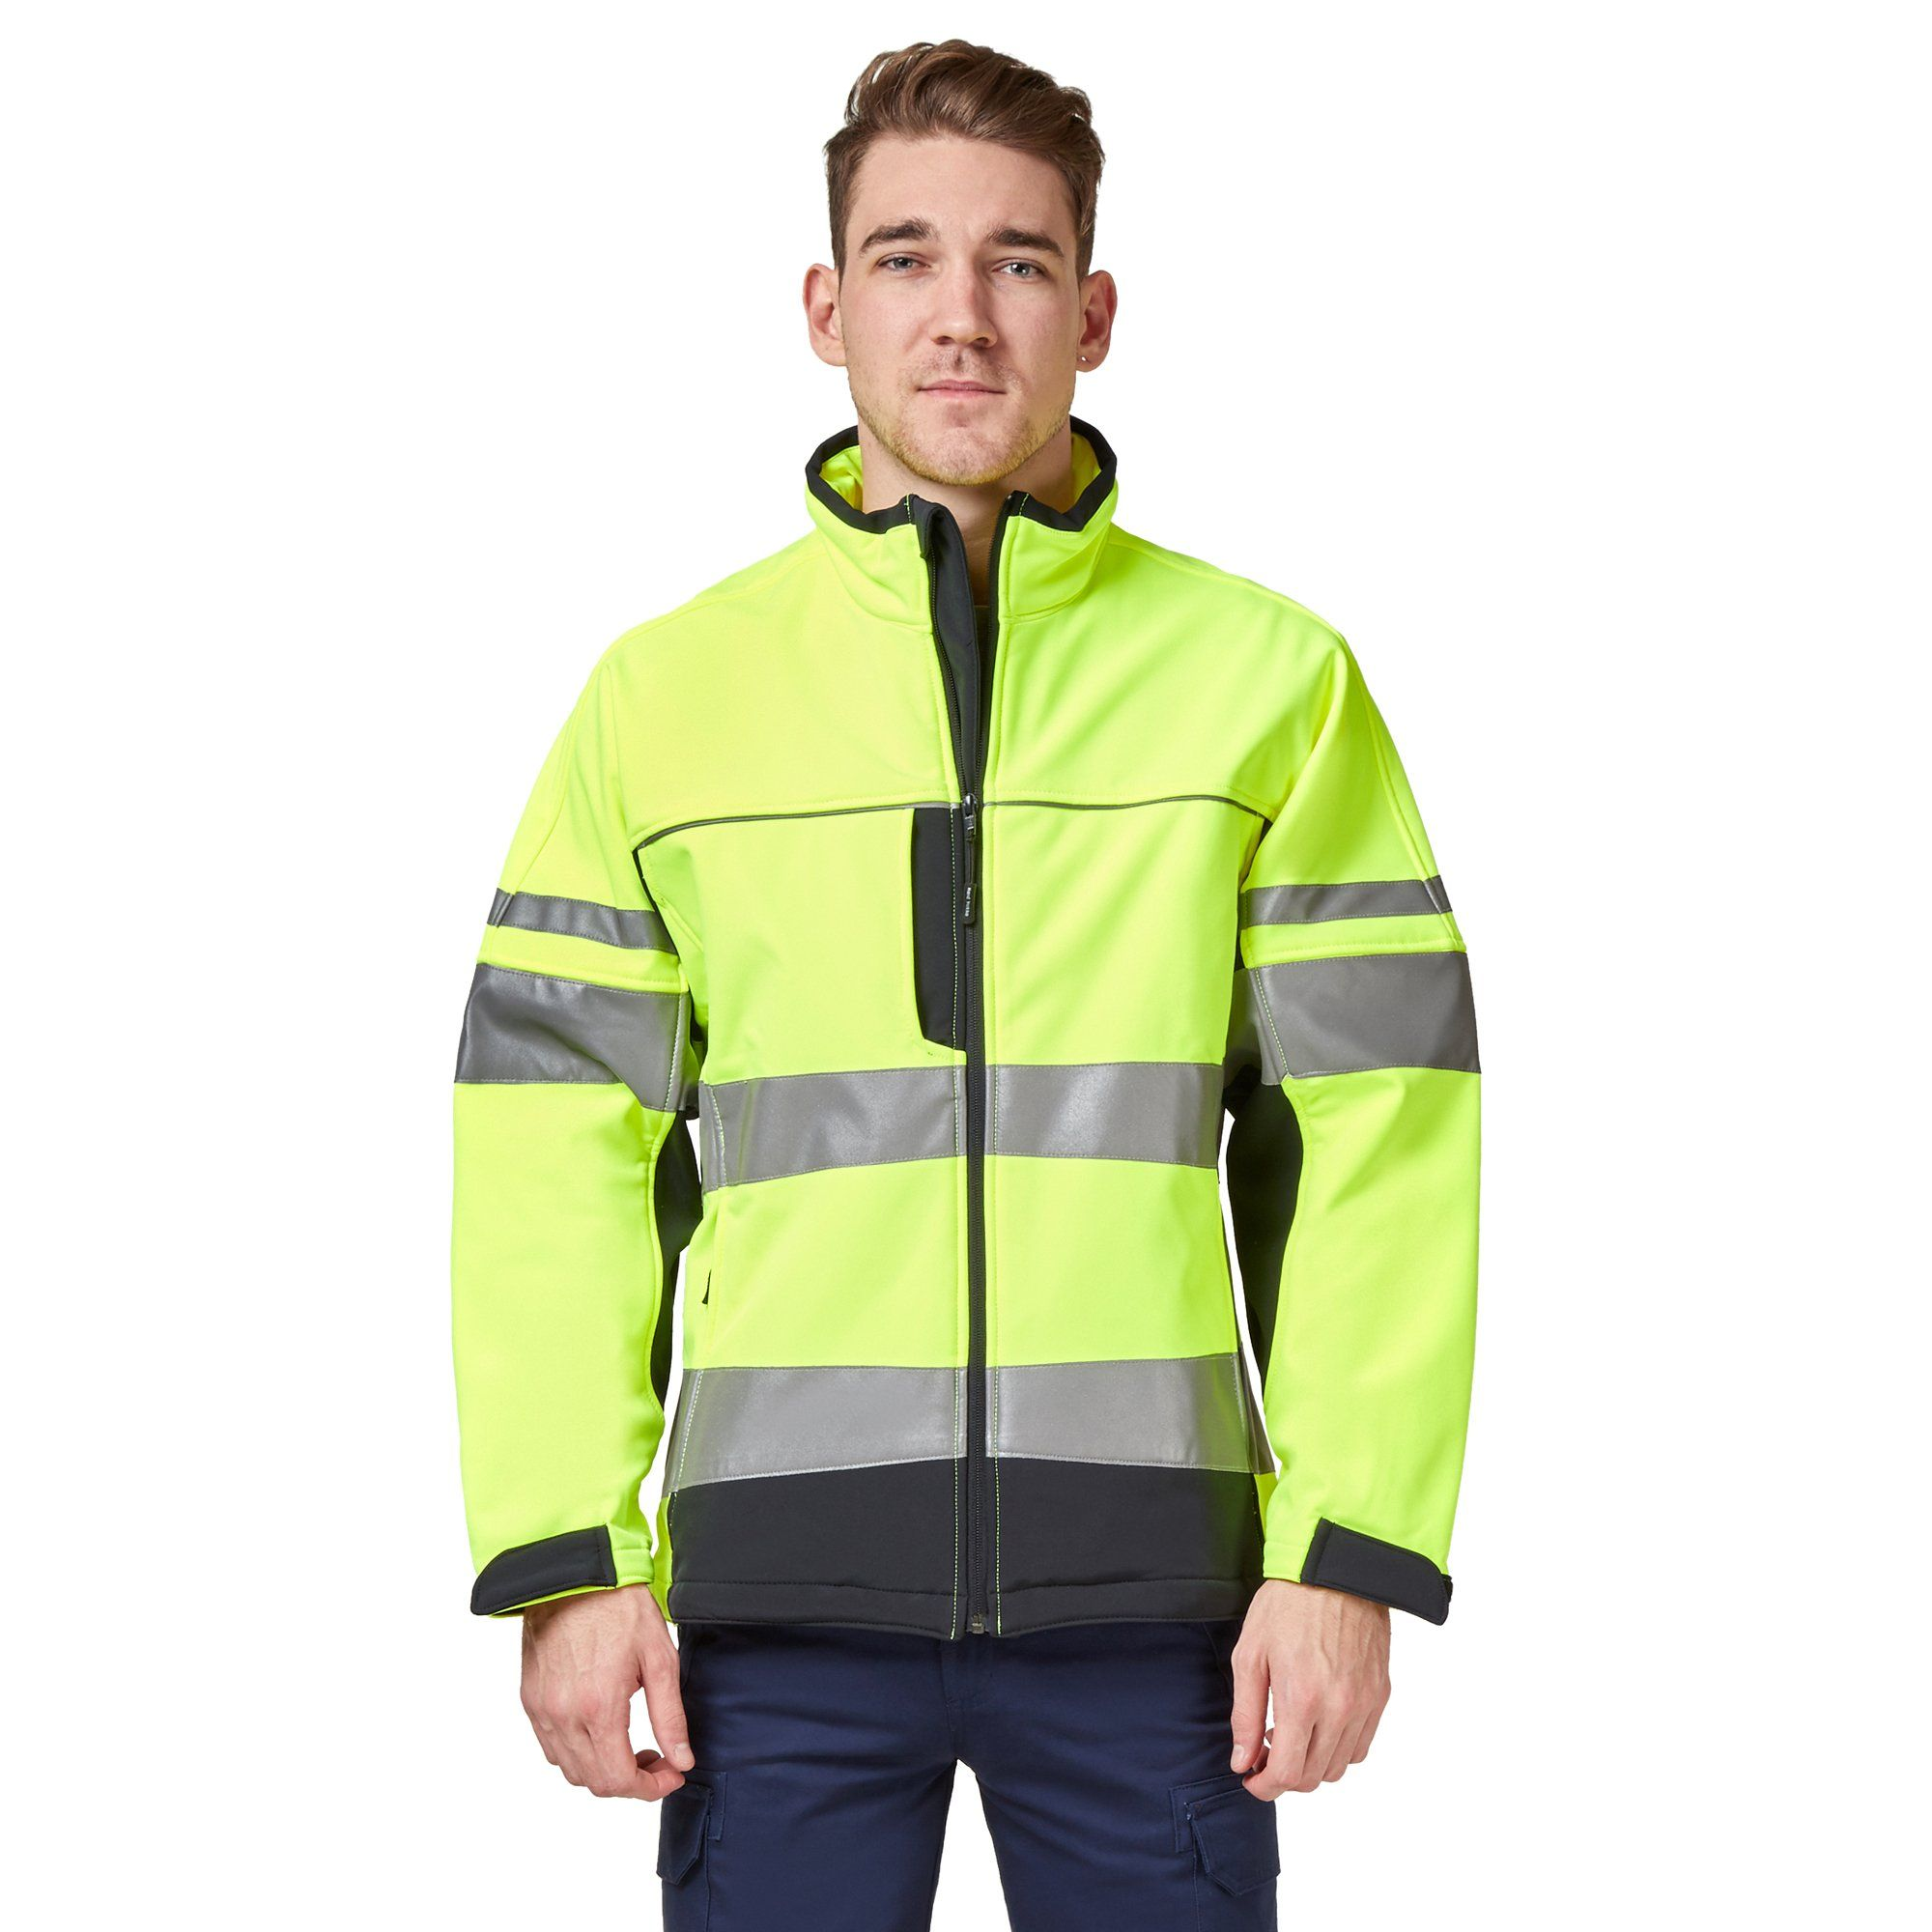 Hard Yakka Men's Hi-Vis Two-Tone Long Sleeve Soft Shell Jacket - Yellow/Navy Workwear Isbister & Co Wholesale